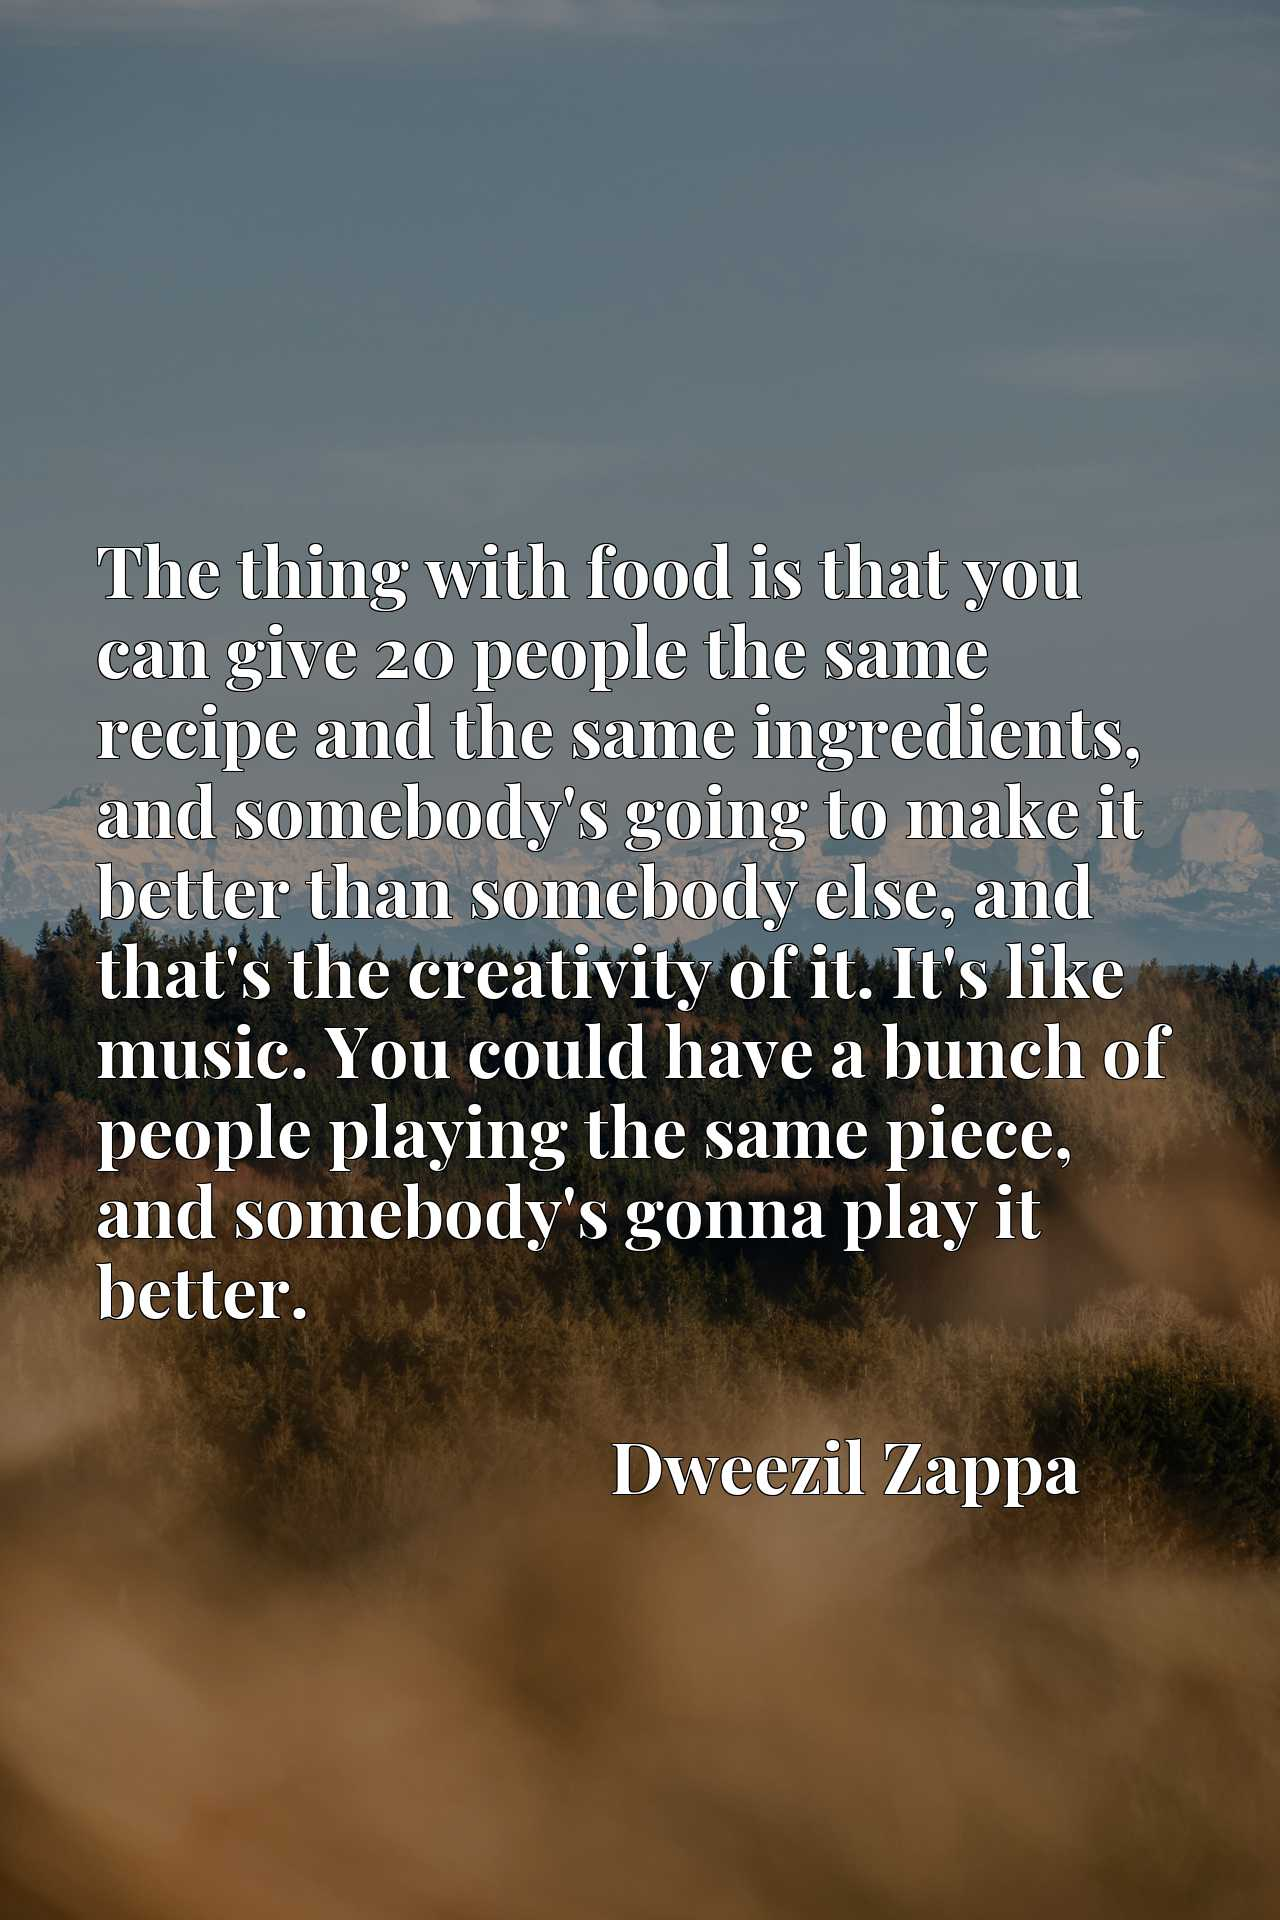 The thing with food is that you can give 20 people the same recipe and the same ingredients, and somebody's going to make it better than somebody else, and that's the creativity of it. It's like music. You could have a bunch of people playing the same piece, and somebody's gonna play it better.